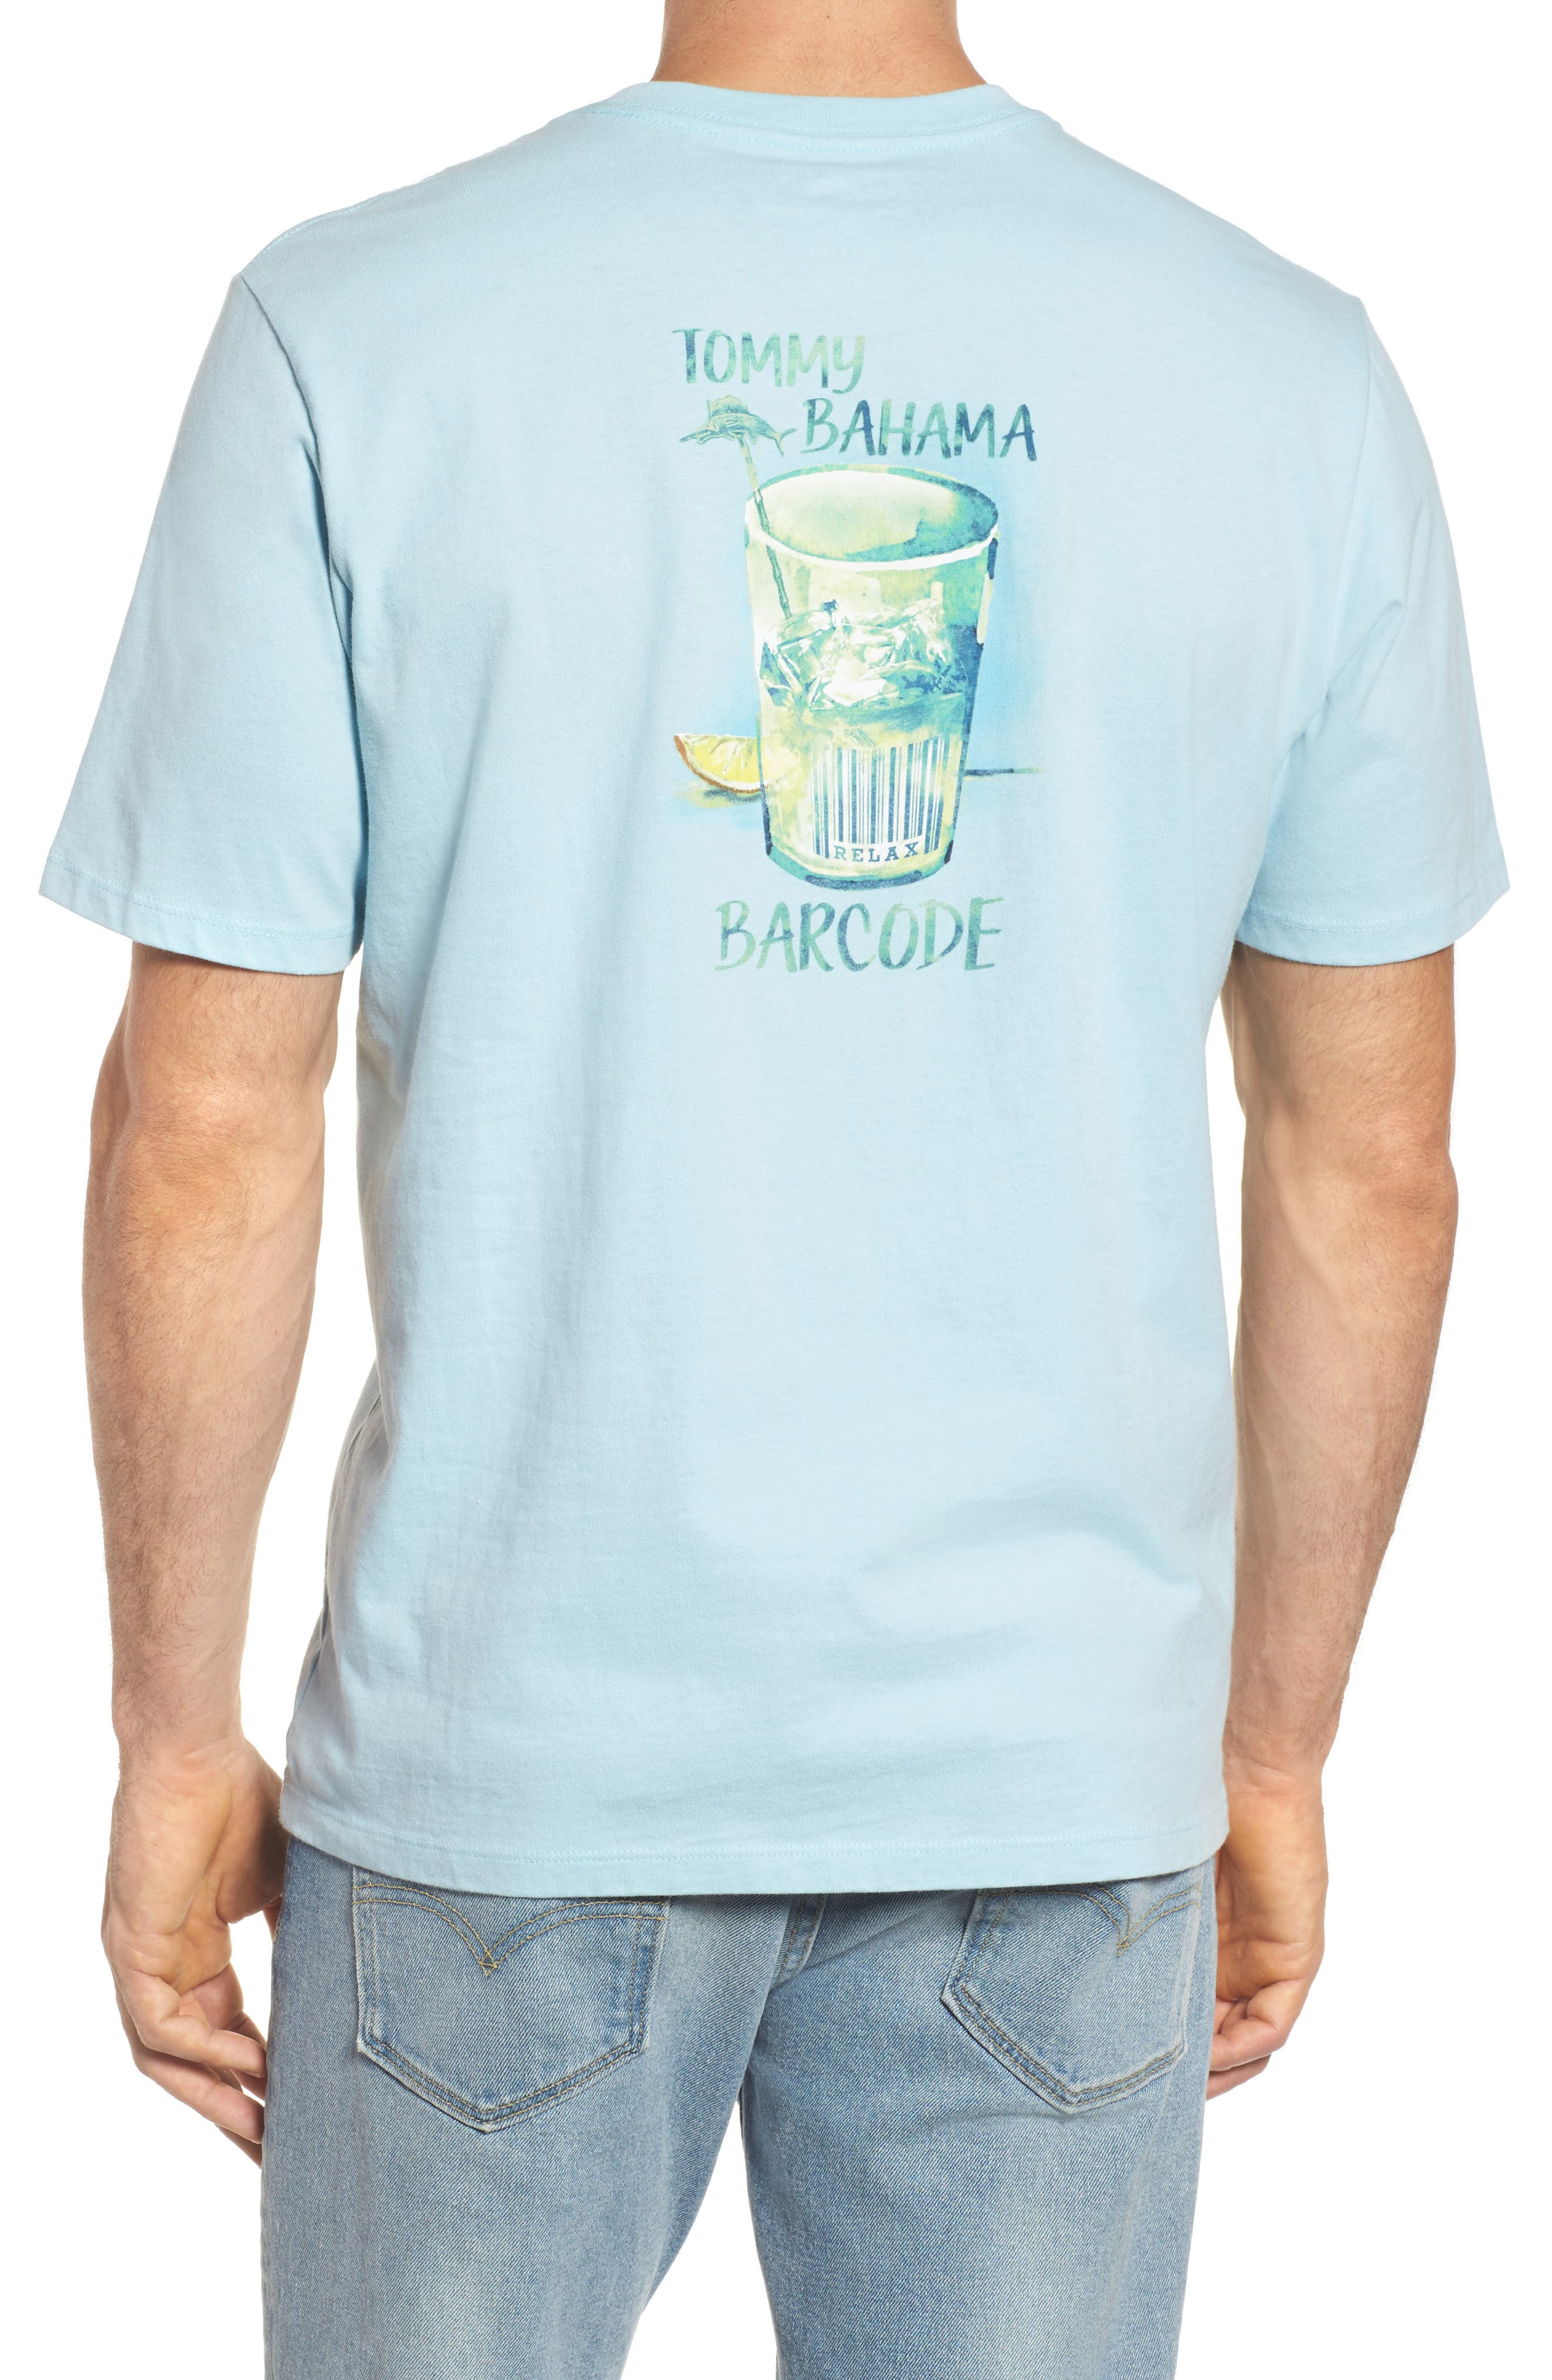 Tommy Bahama Barcode Graphic T-Shirt